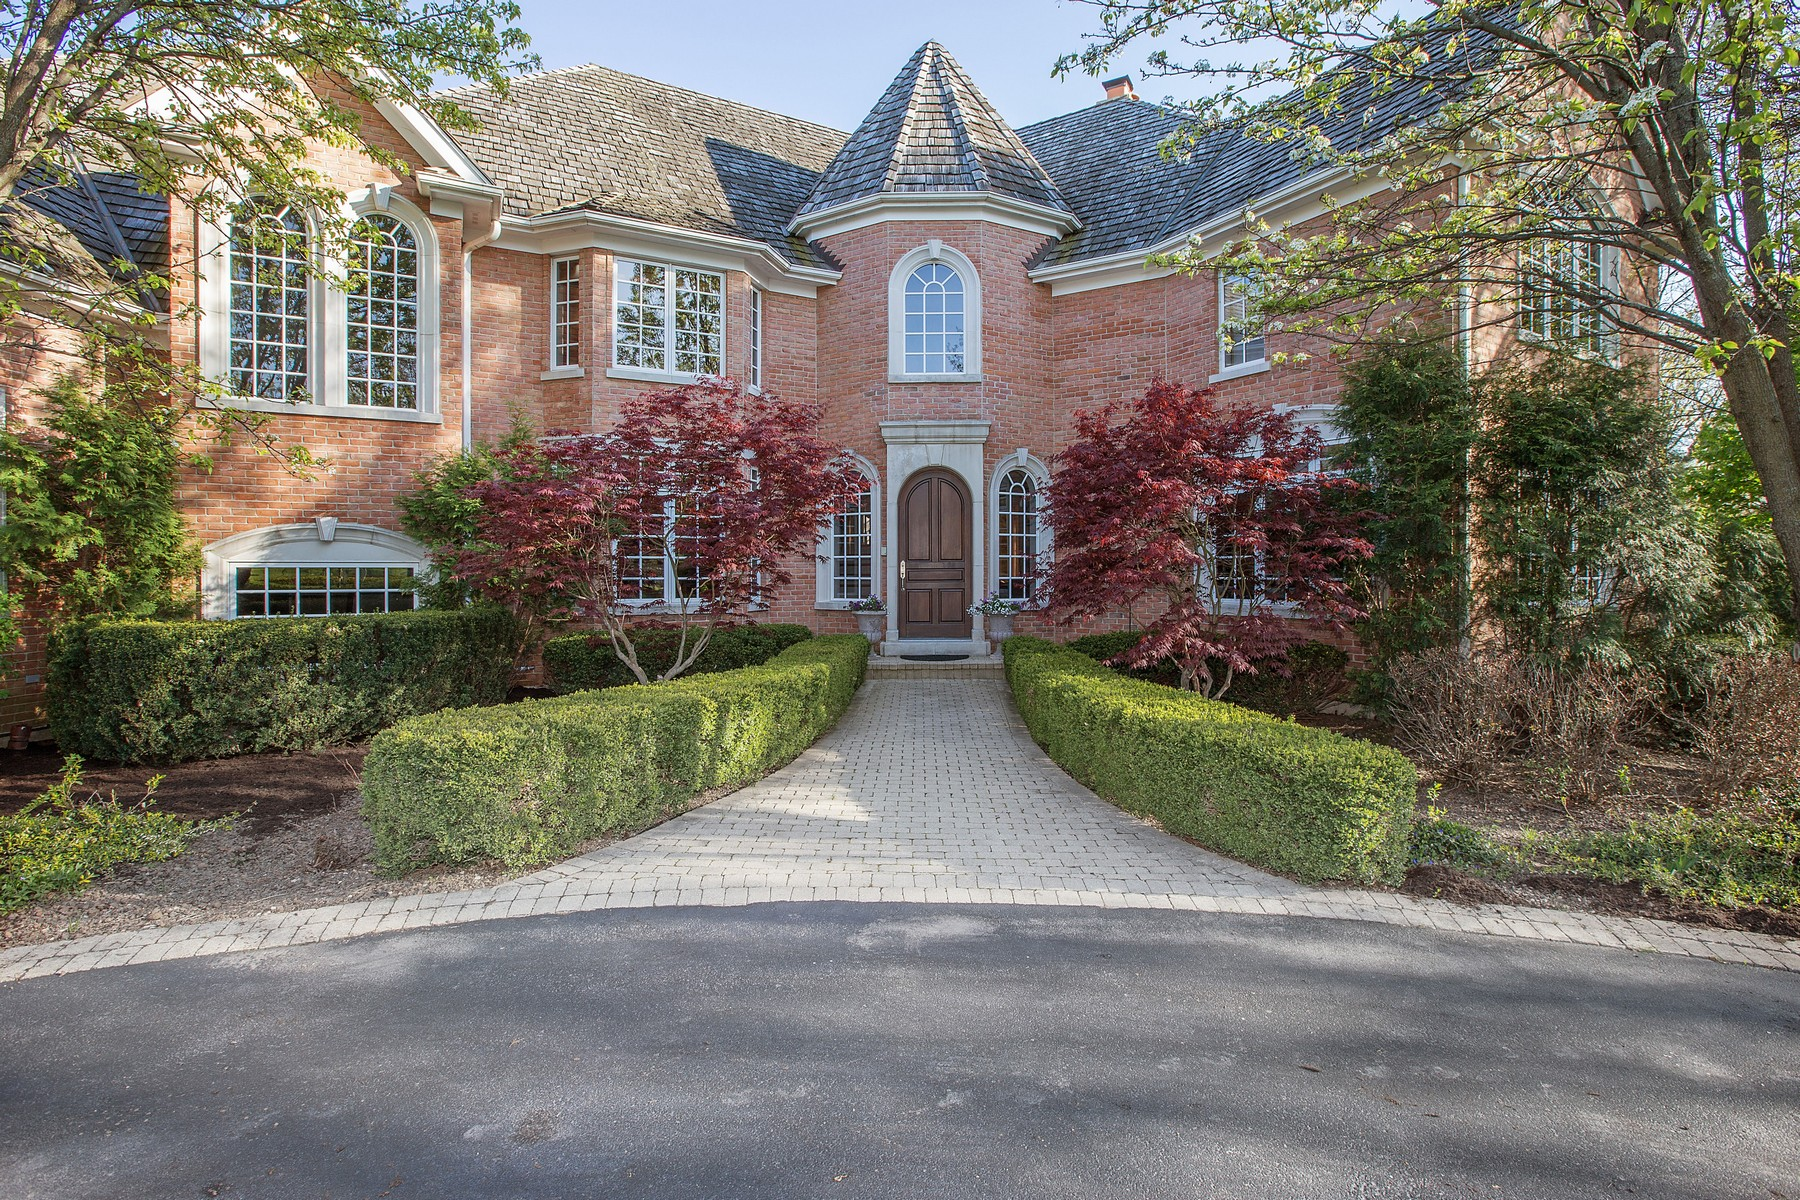 Single Family Home for Sale at Custom Built For Entertaining 158 N Wynstone Drive North Barrington, Illinois 60010 United States